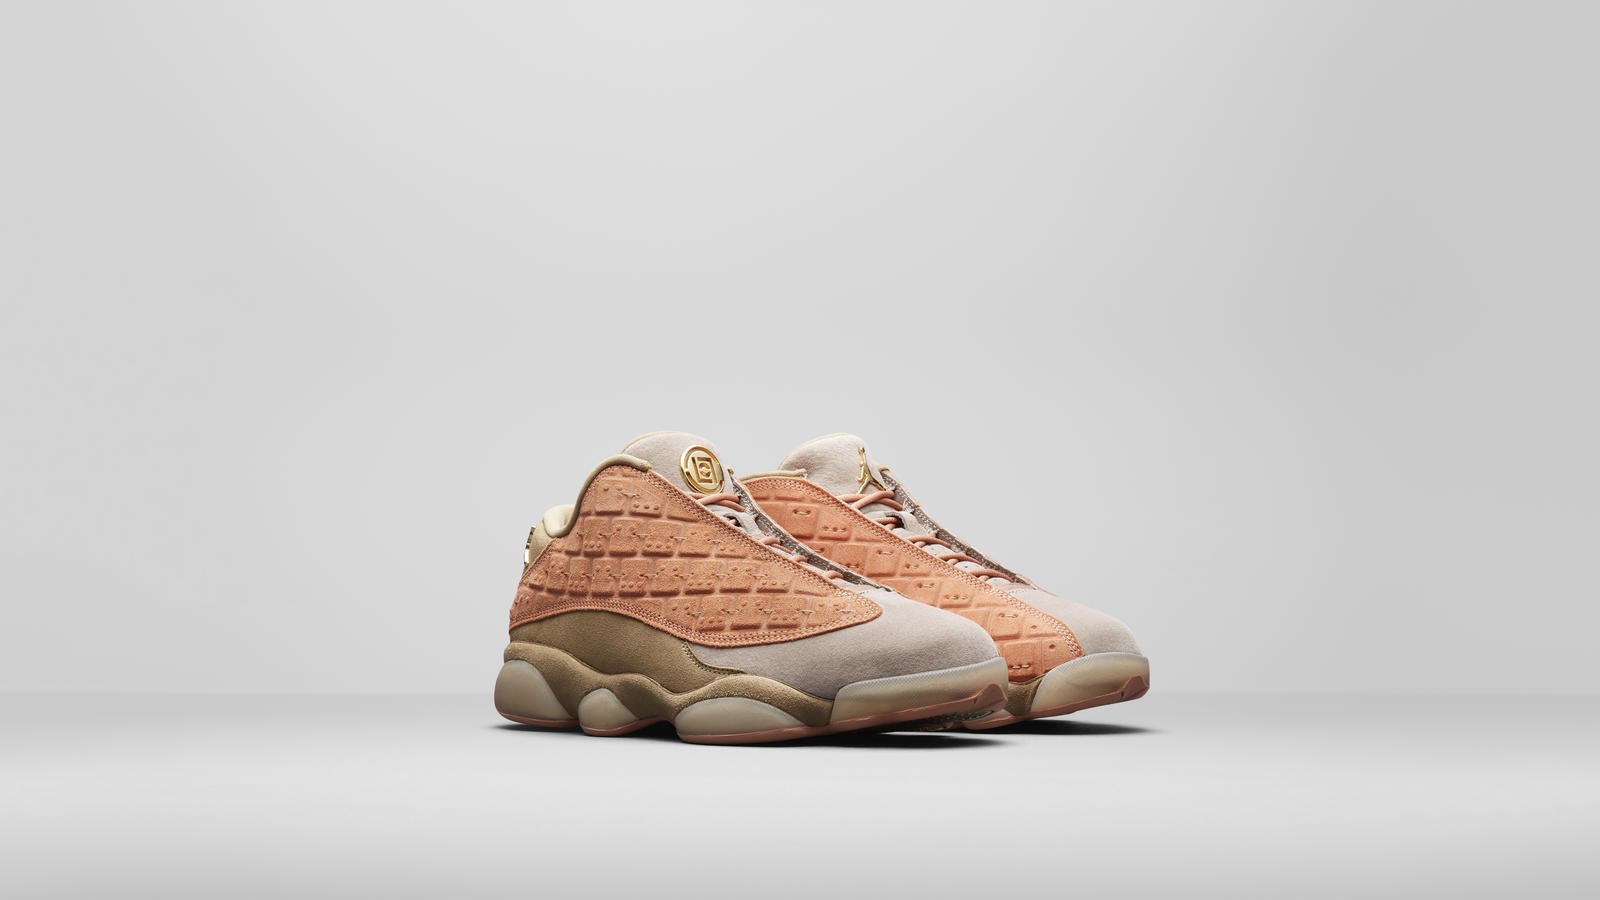 hot sale online 9878d 0a05a CLOT x Air Jordan XIII Low 1